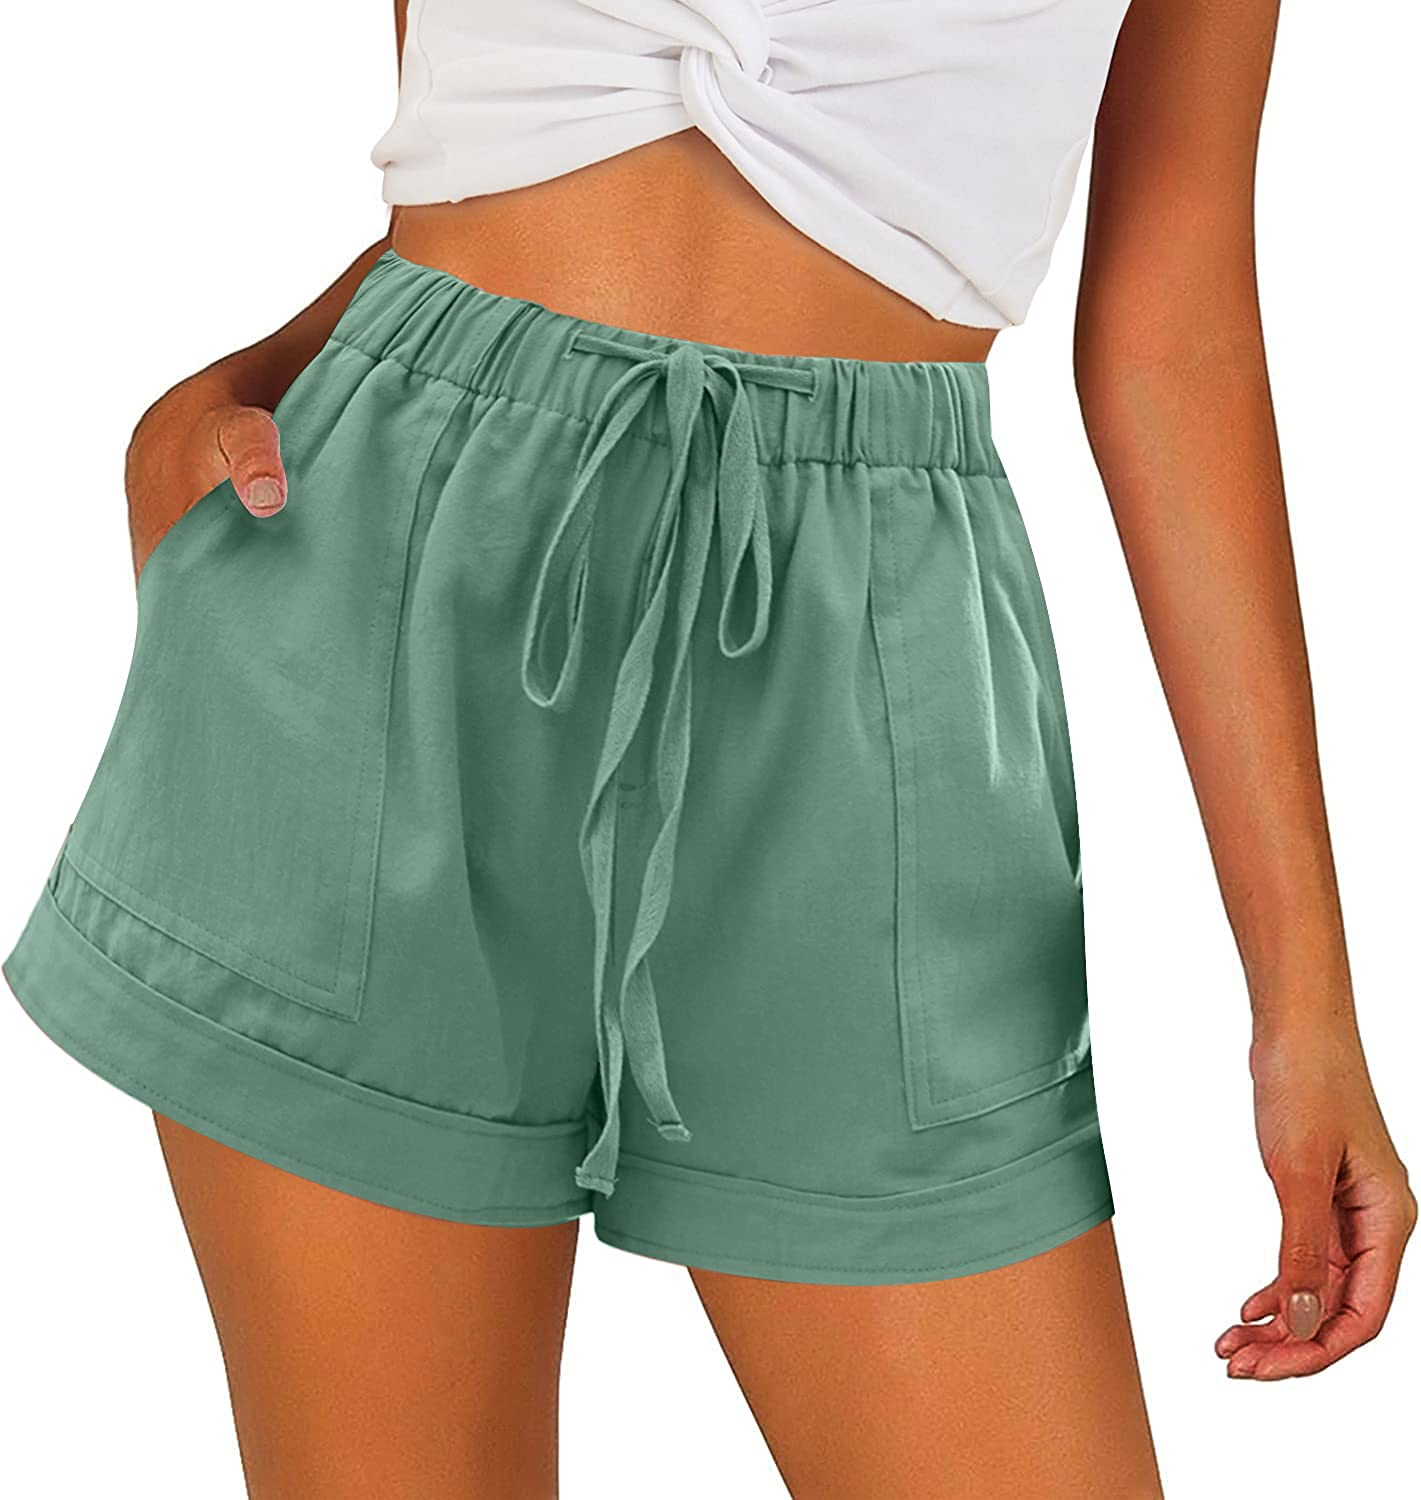 Basic Faith New color Women's Direct sale of manufacturer Athletic Shorts Casual Beach Spring S Summer